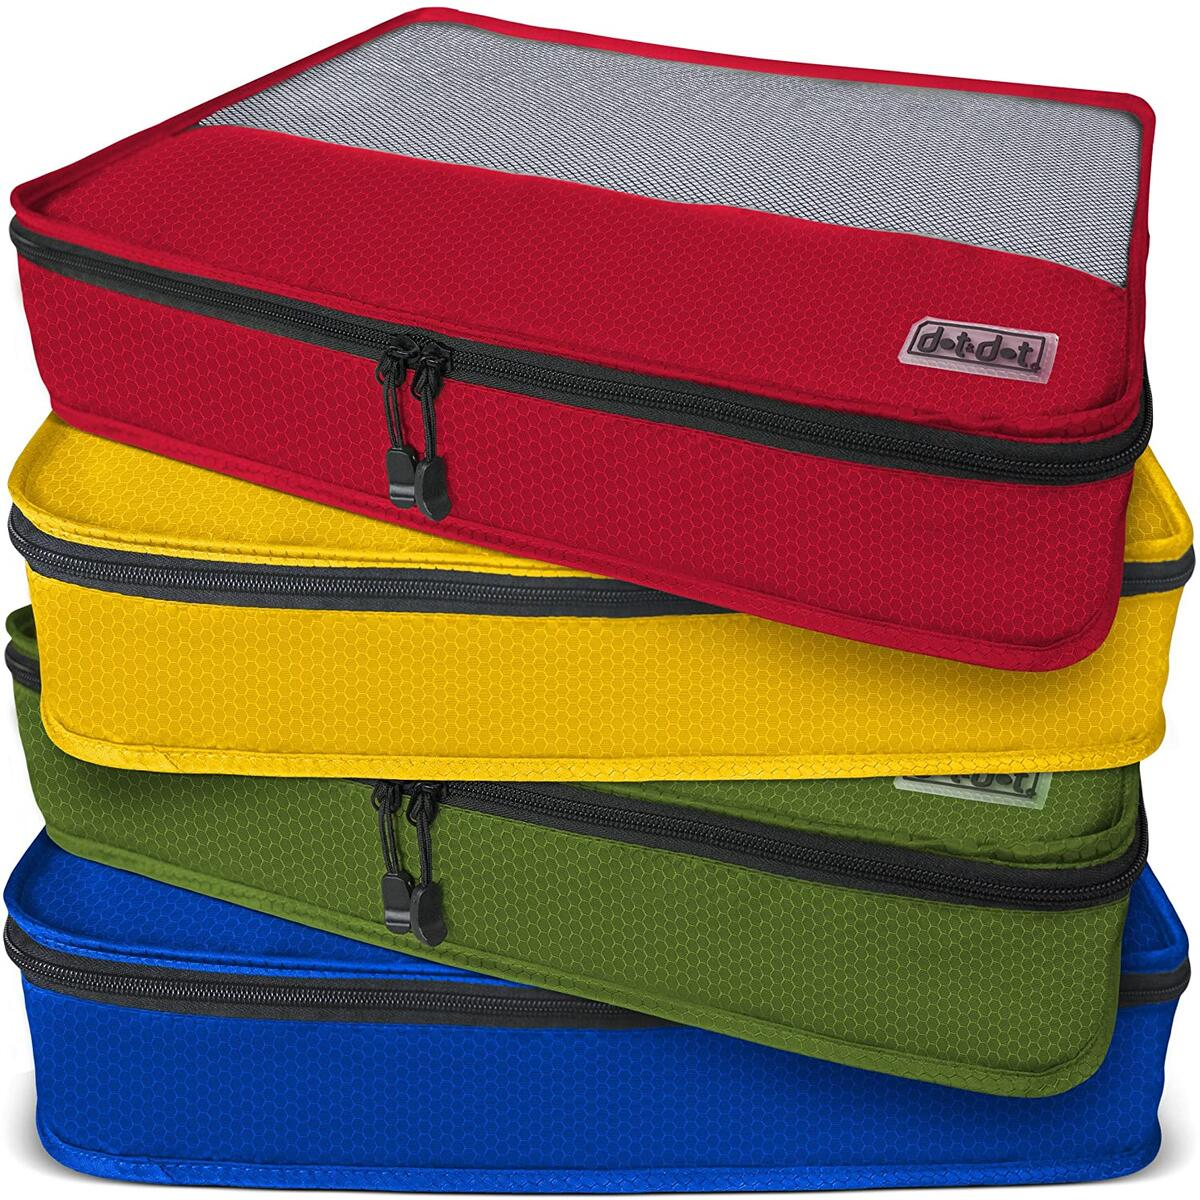 Dot&Dot Large Packing Cubes for Travel - Luggage Accessories Organizers Set (Red/Yellow/Green/Dark Blue)